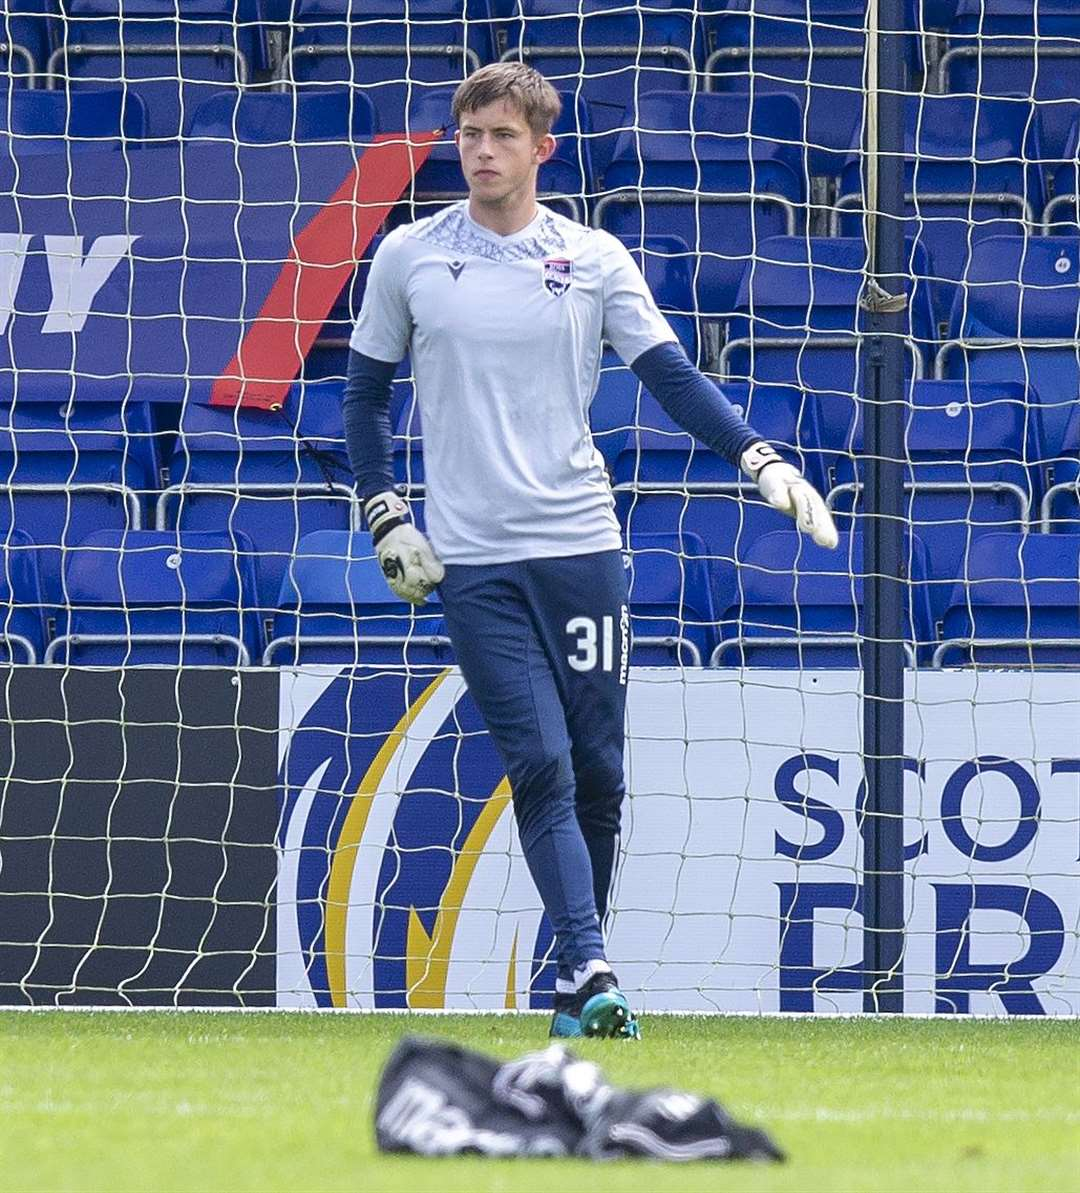 Picture - Ken Macpherson, Inverness. Ross County(1) v Dundee United(2). 15.08.20. Ross County 'keeper Ross Munro.